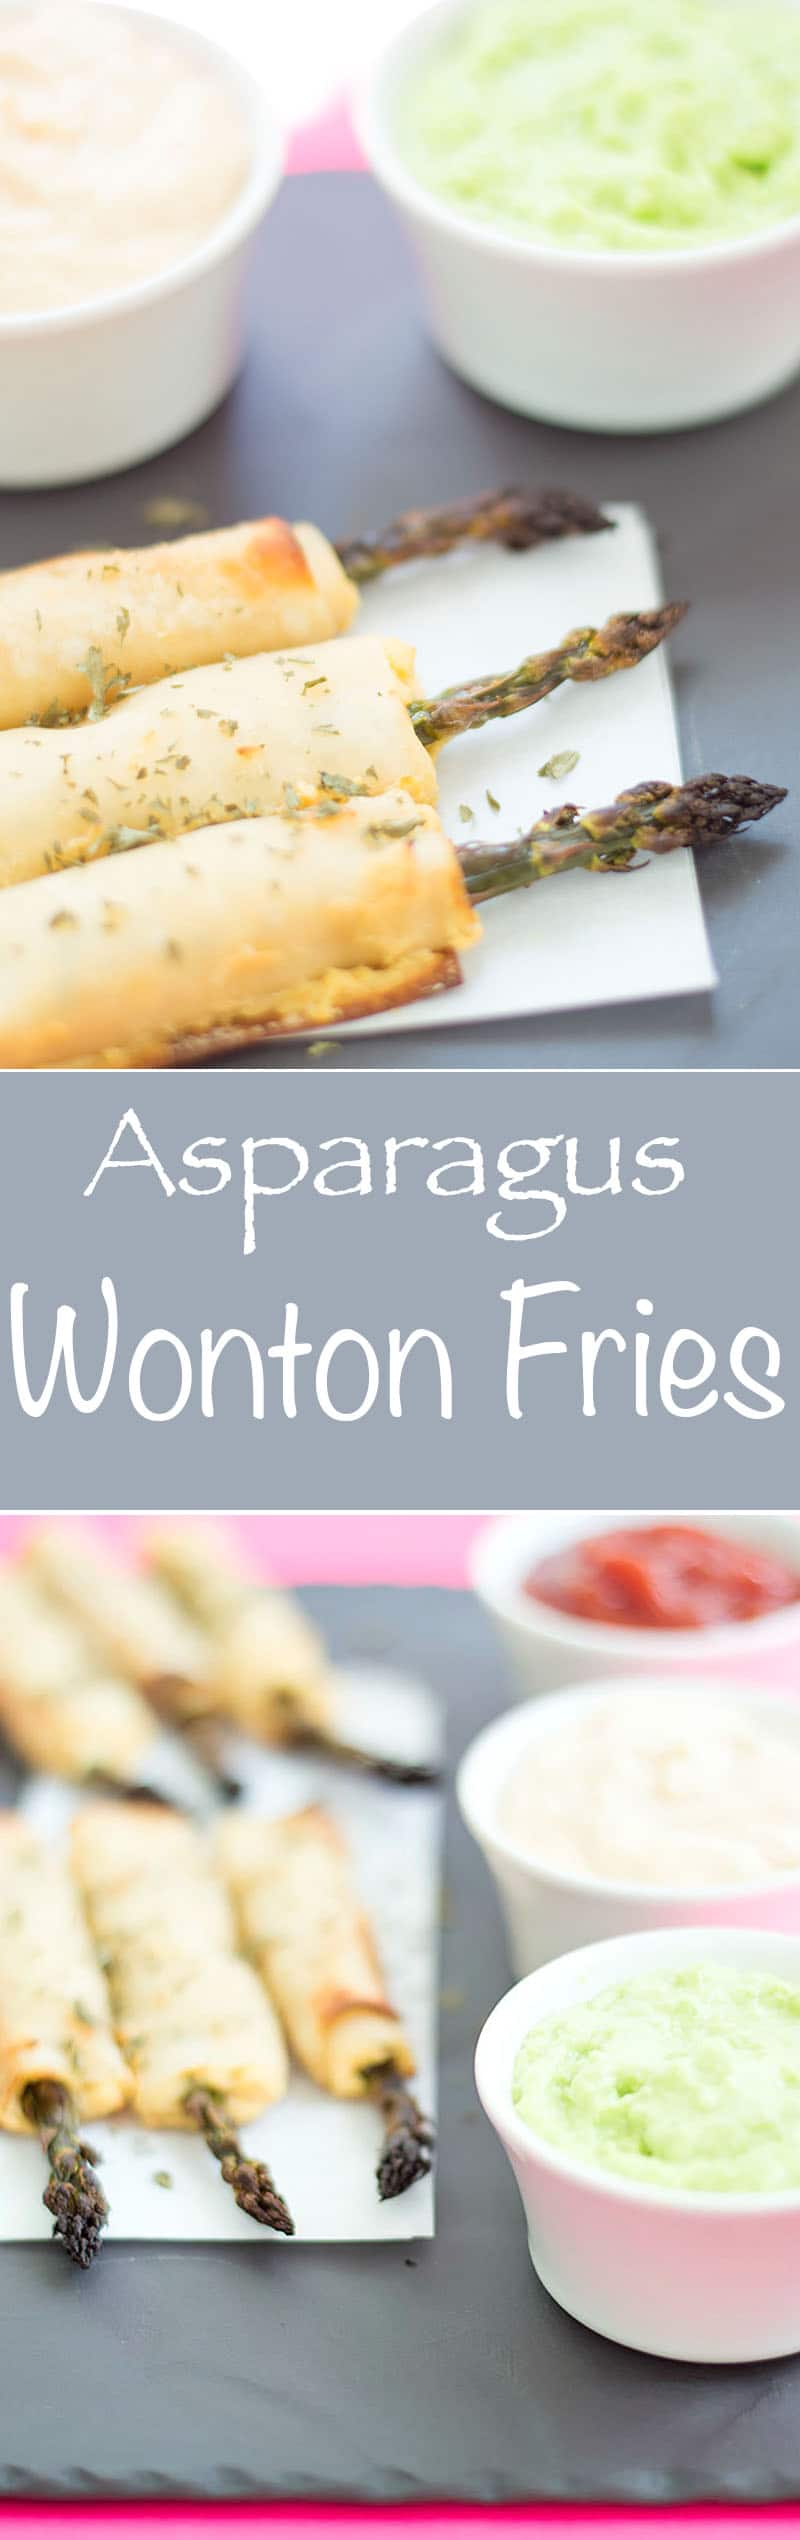 Asparagus Wonton Fries - easy to make + healthy baked. Spread Mango sriracha dip on the wontons, wrap it and roast. Simple, kid-friendly vegan snack.